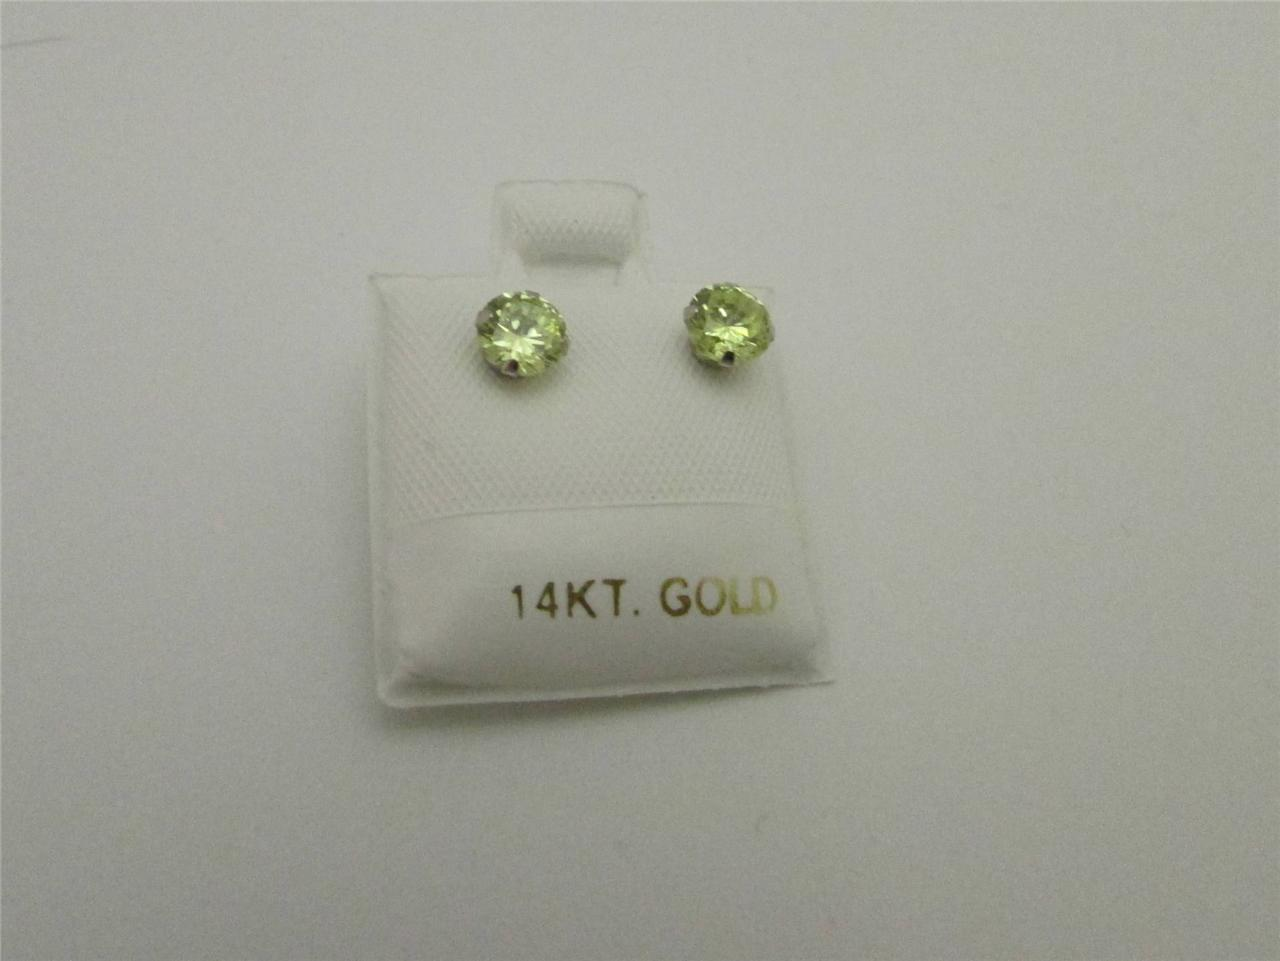 Birthstone Earrings 14kt White Gold Round Shape Stud